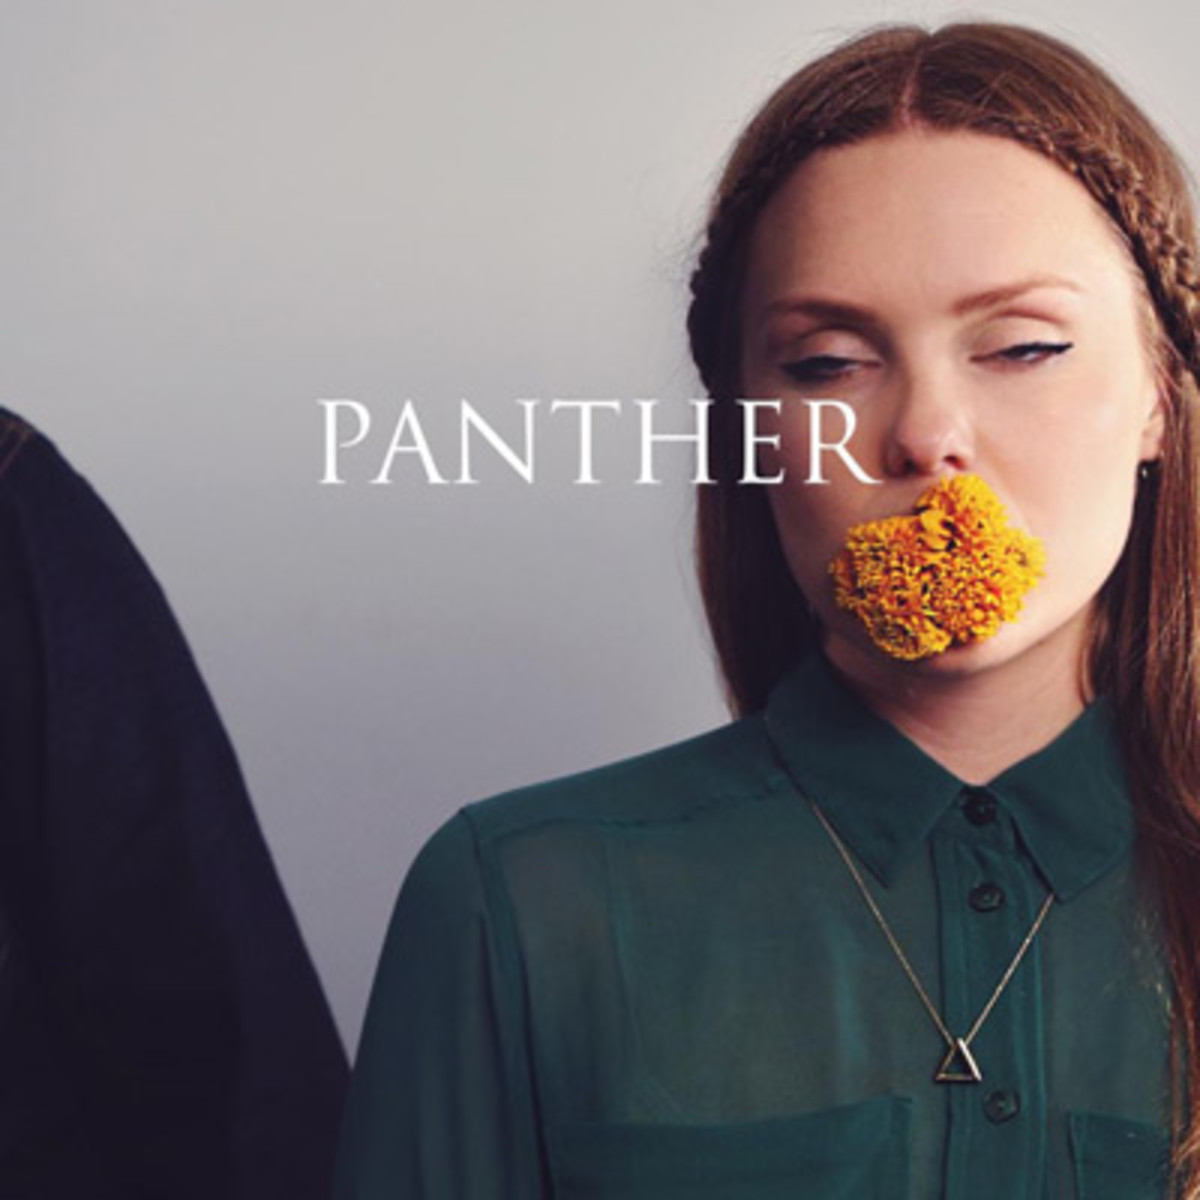 madeinheights-panther.jpg